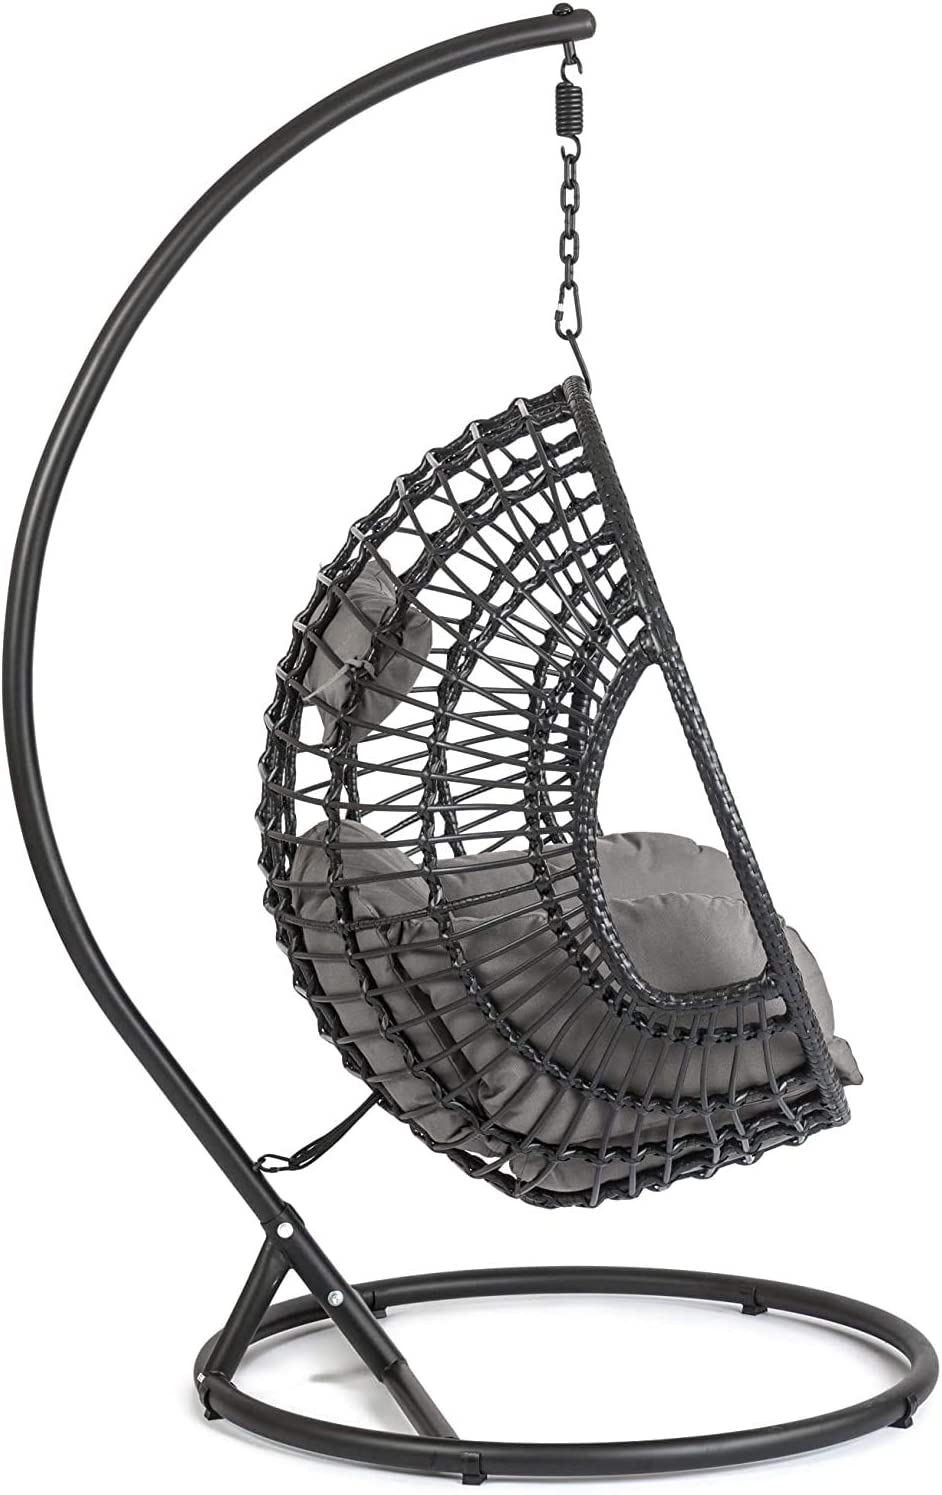 Gray,Black jhtceu Hanging egg chair outdoor and indoor rattan weaving swing hammock hanger and landing aircraft